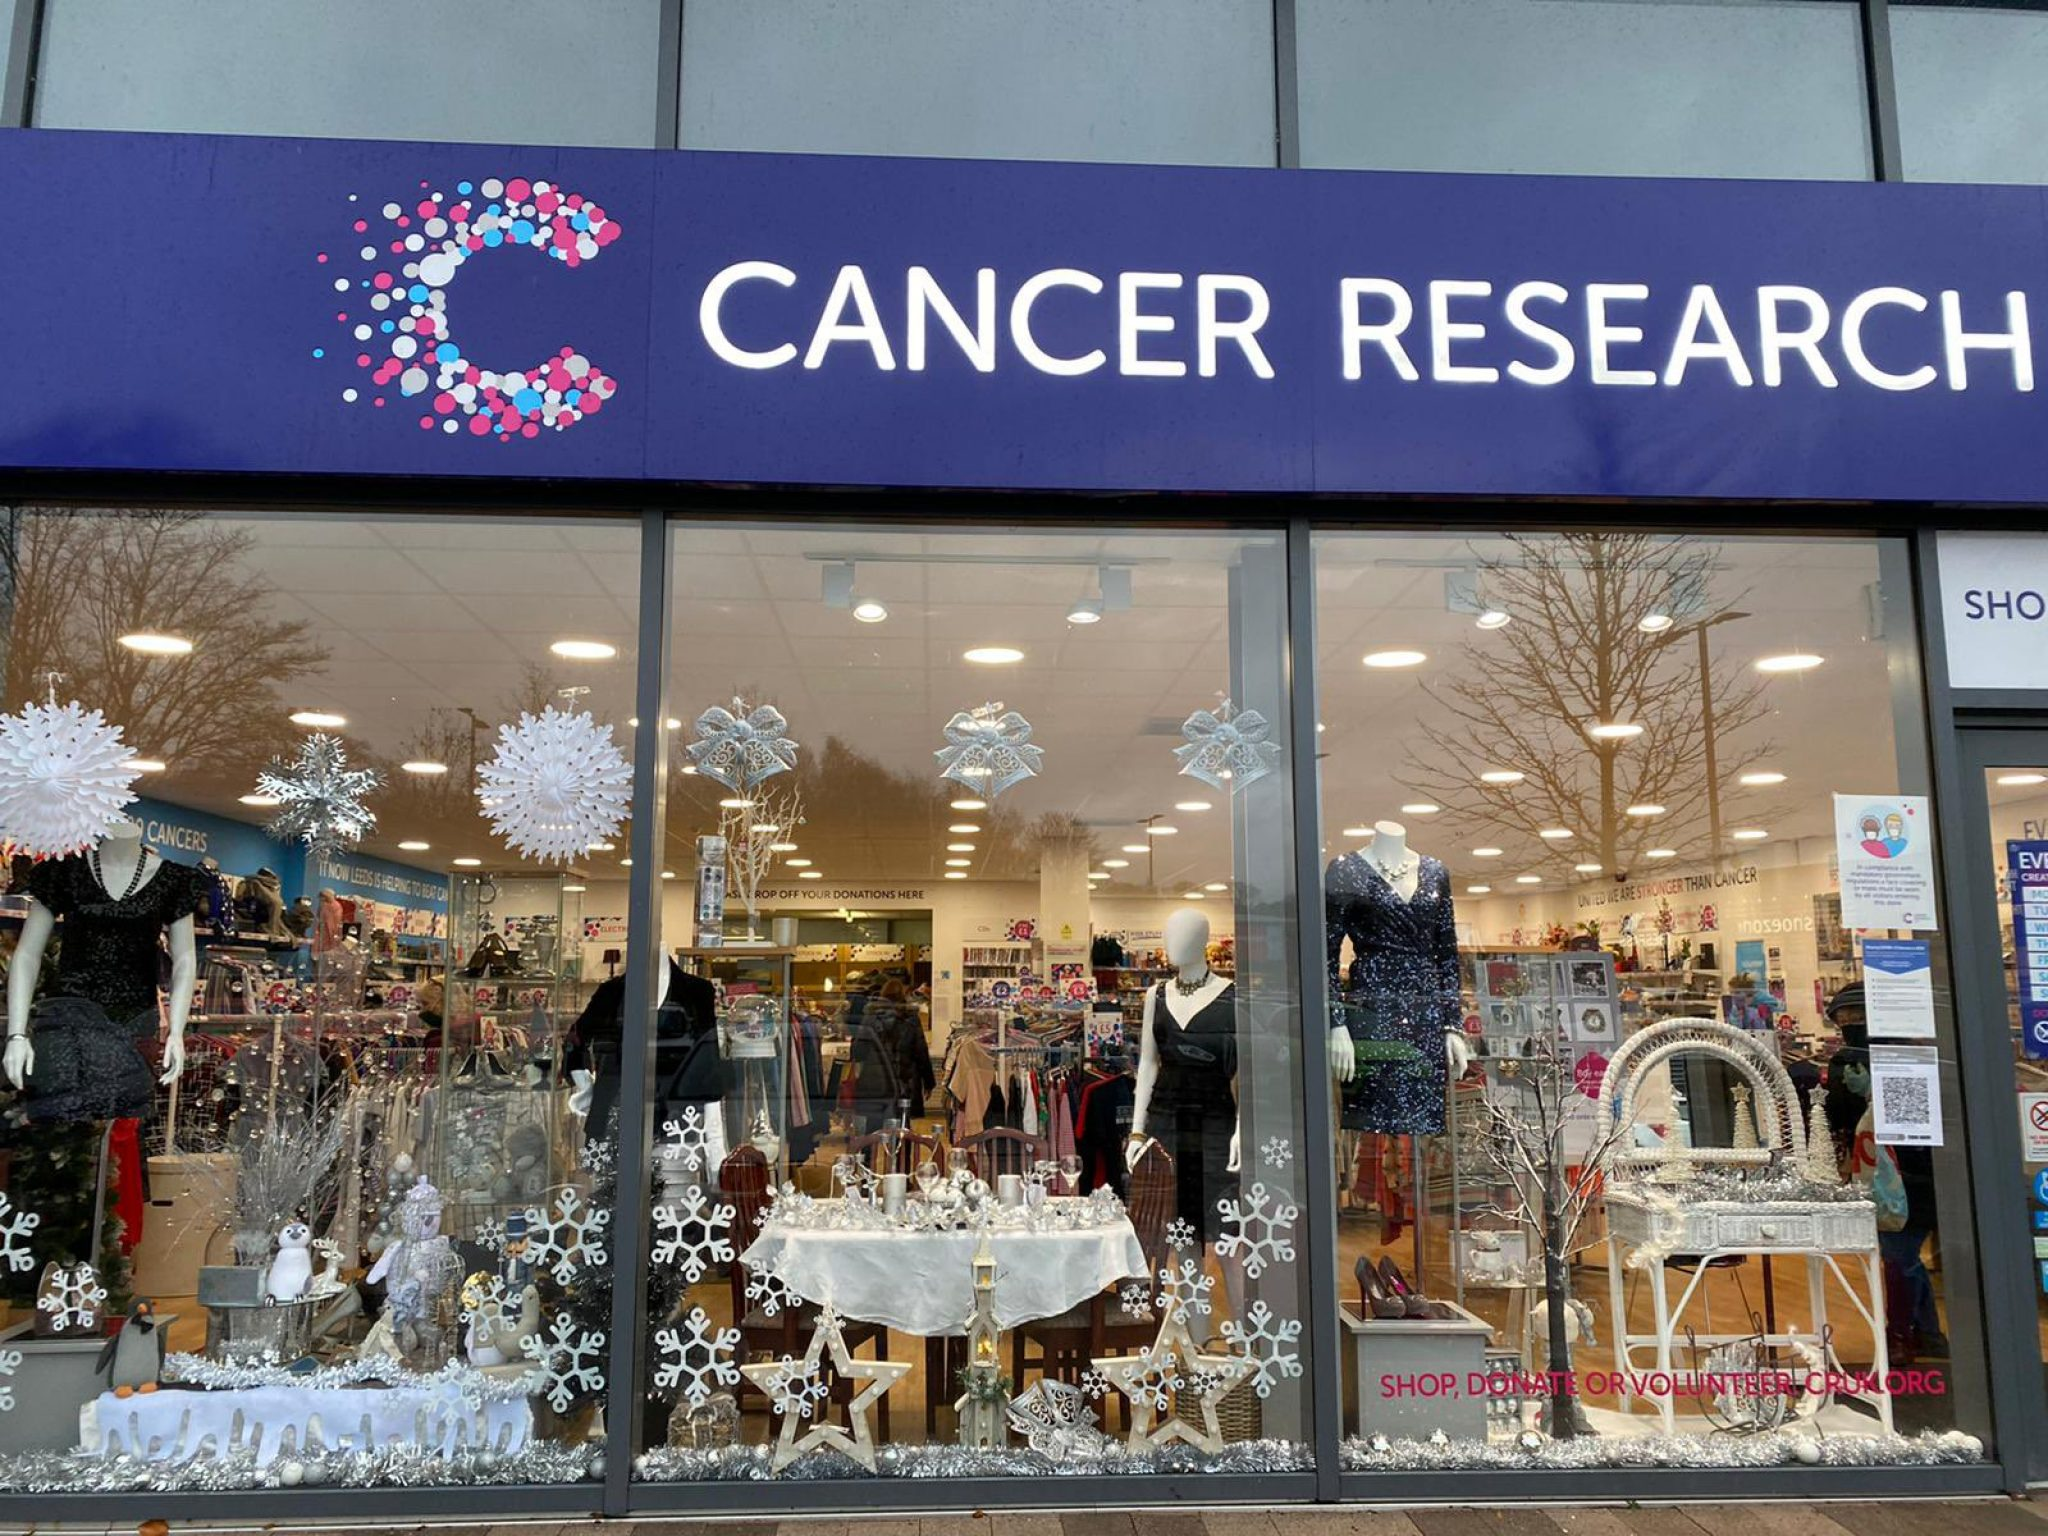 Battery recycling has come to Cancer Research UK stores